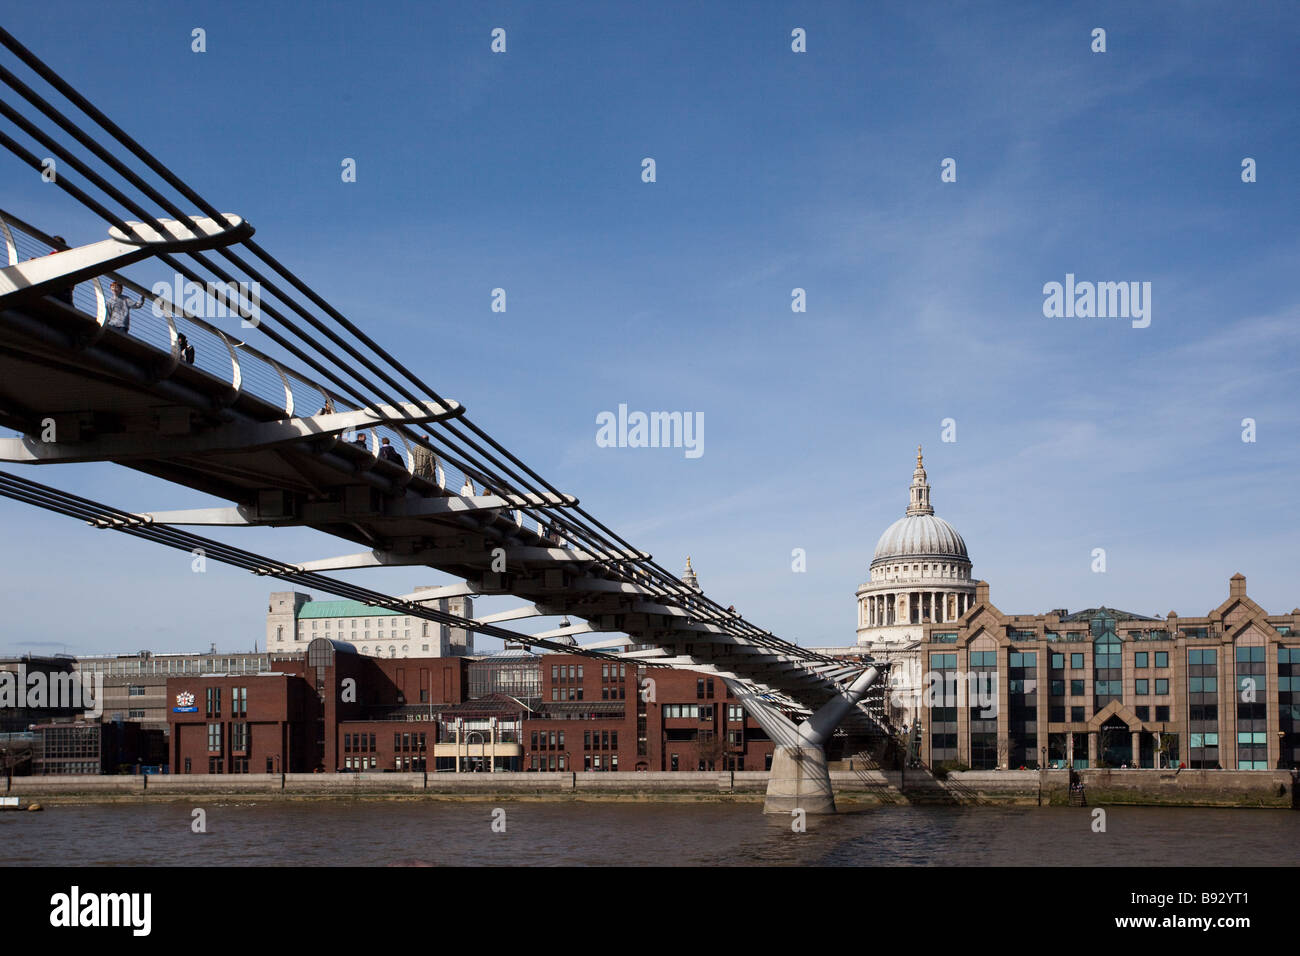 St Pauls Cathedral and the Millenium Bridge in London UK Stock Photo